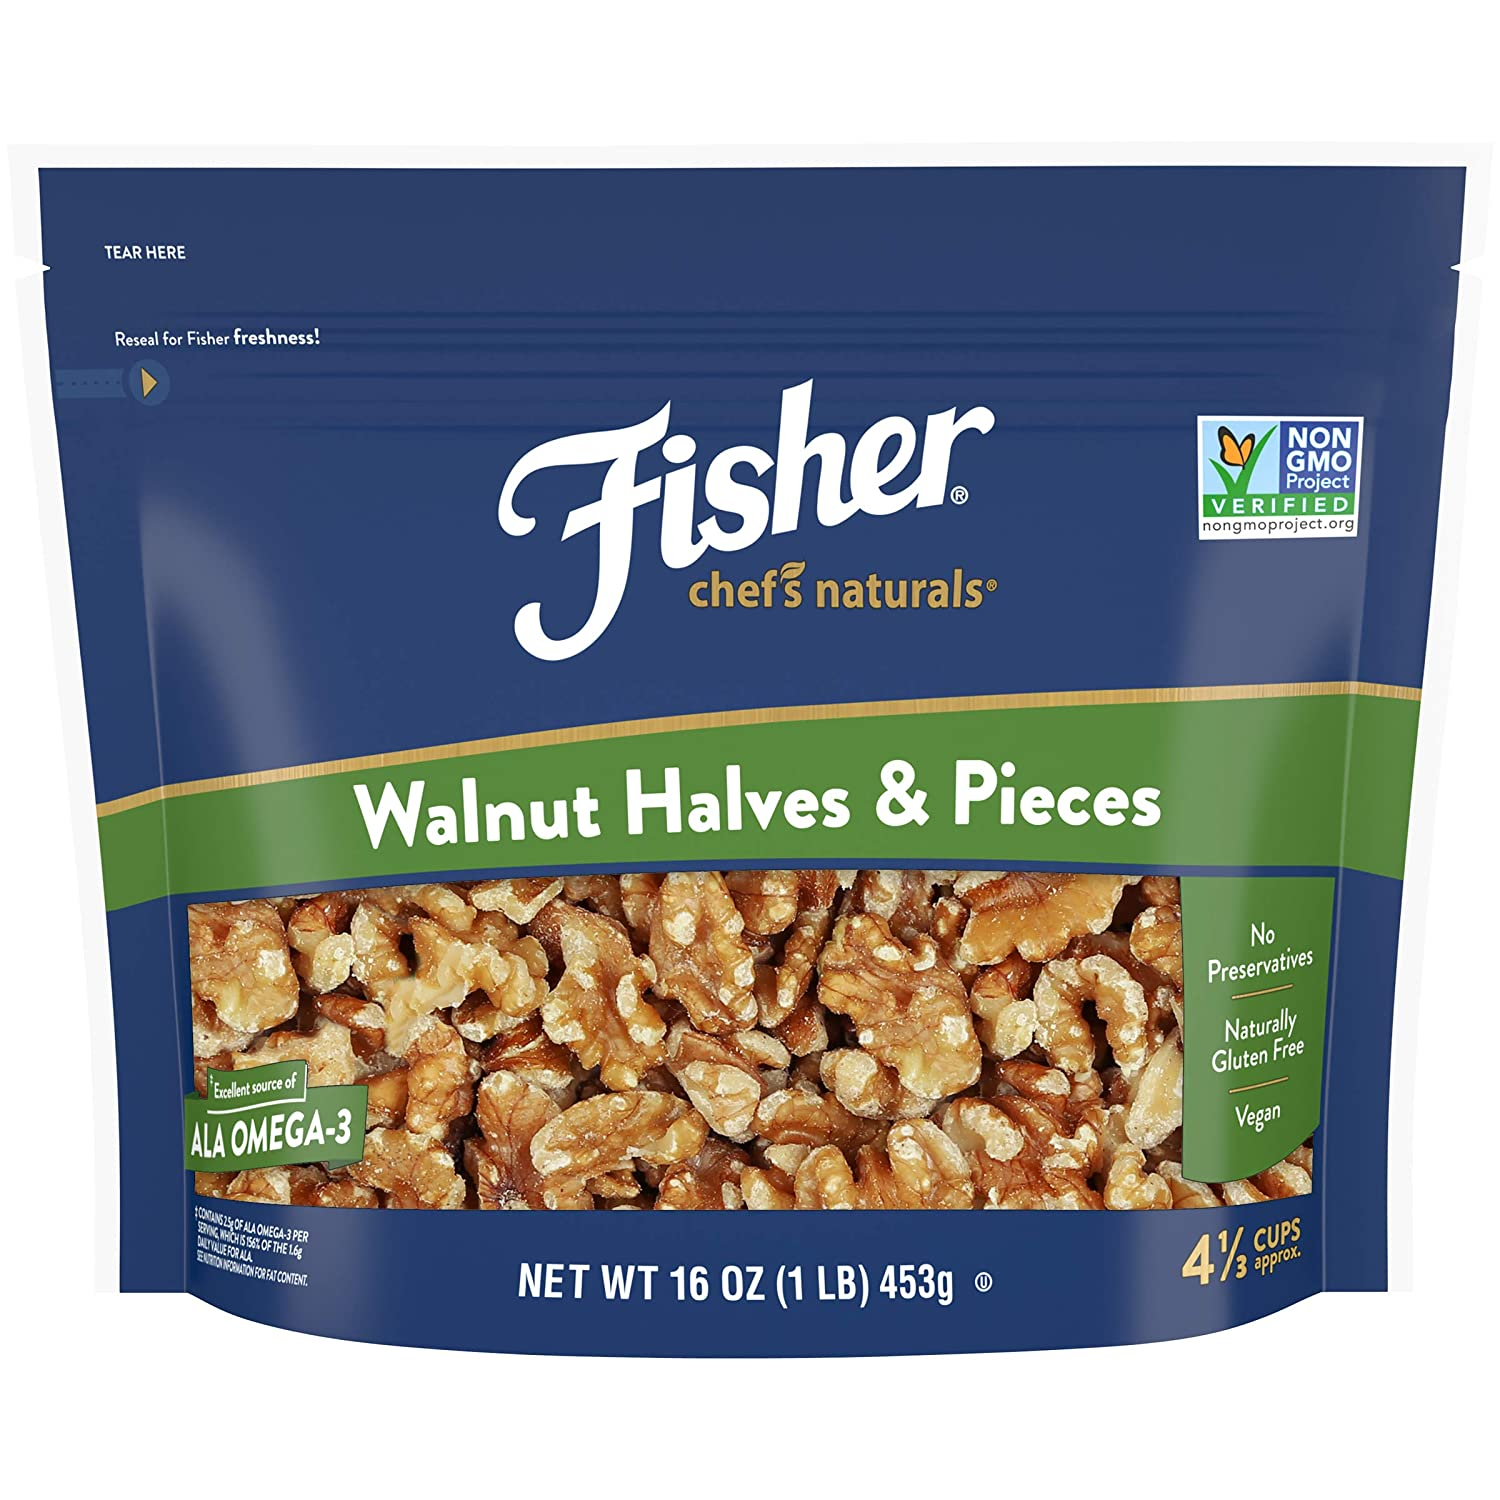 Fisher Chef's NaturalsWalnut Halves & Pieces, 16 oz, Naturally Gluten Free, No Preservatives, Non-GMO